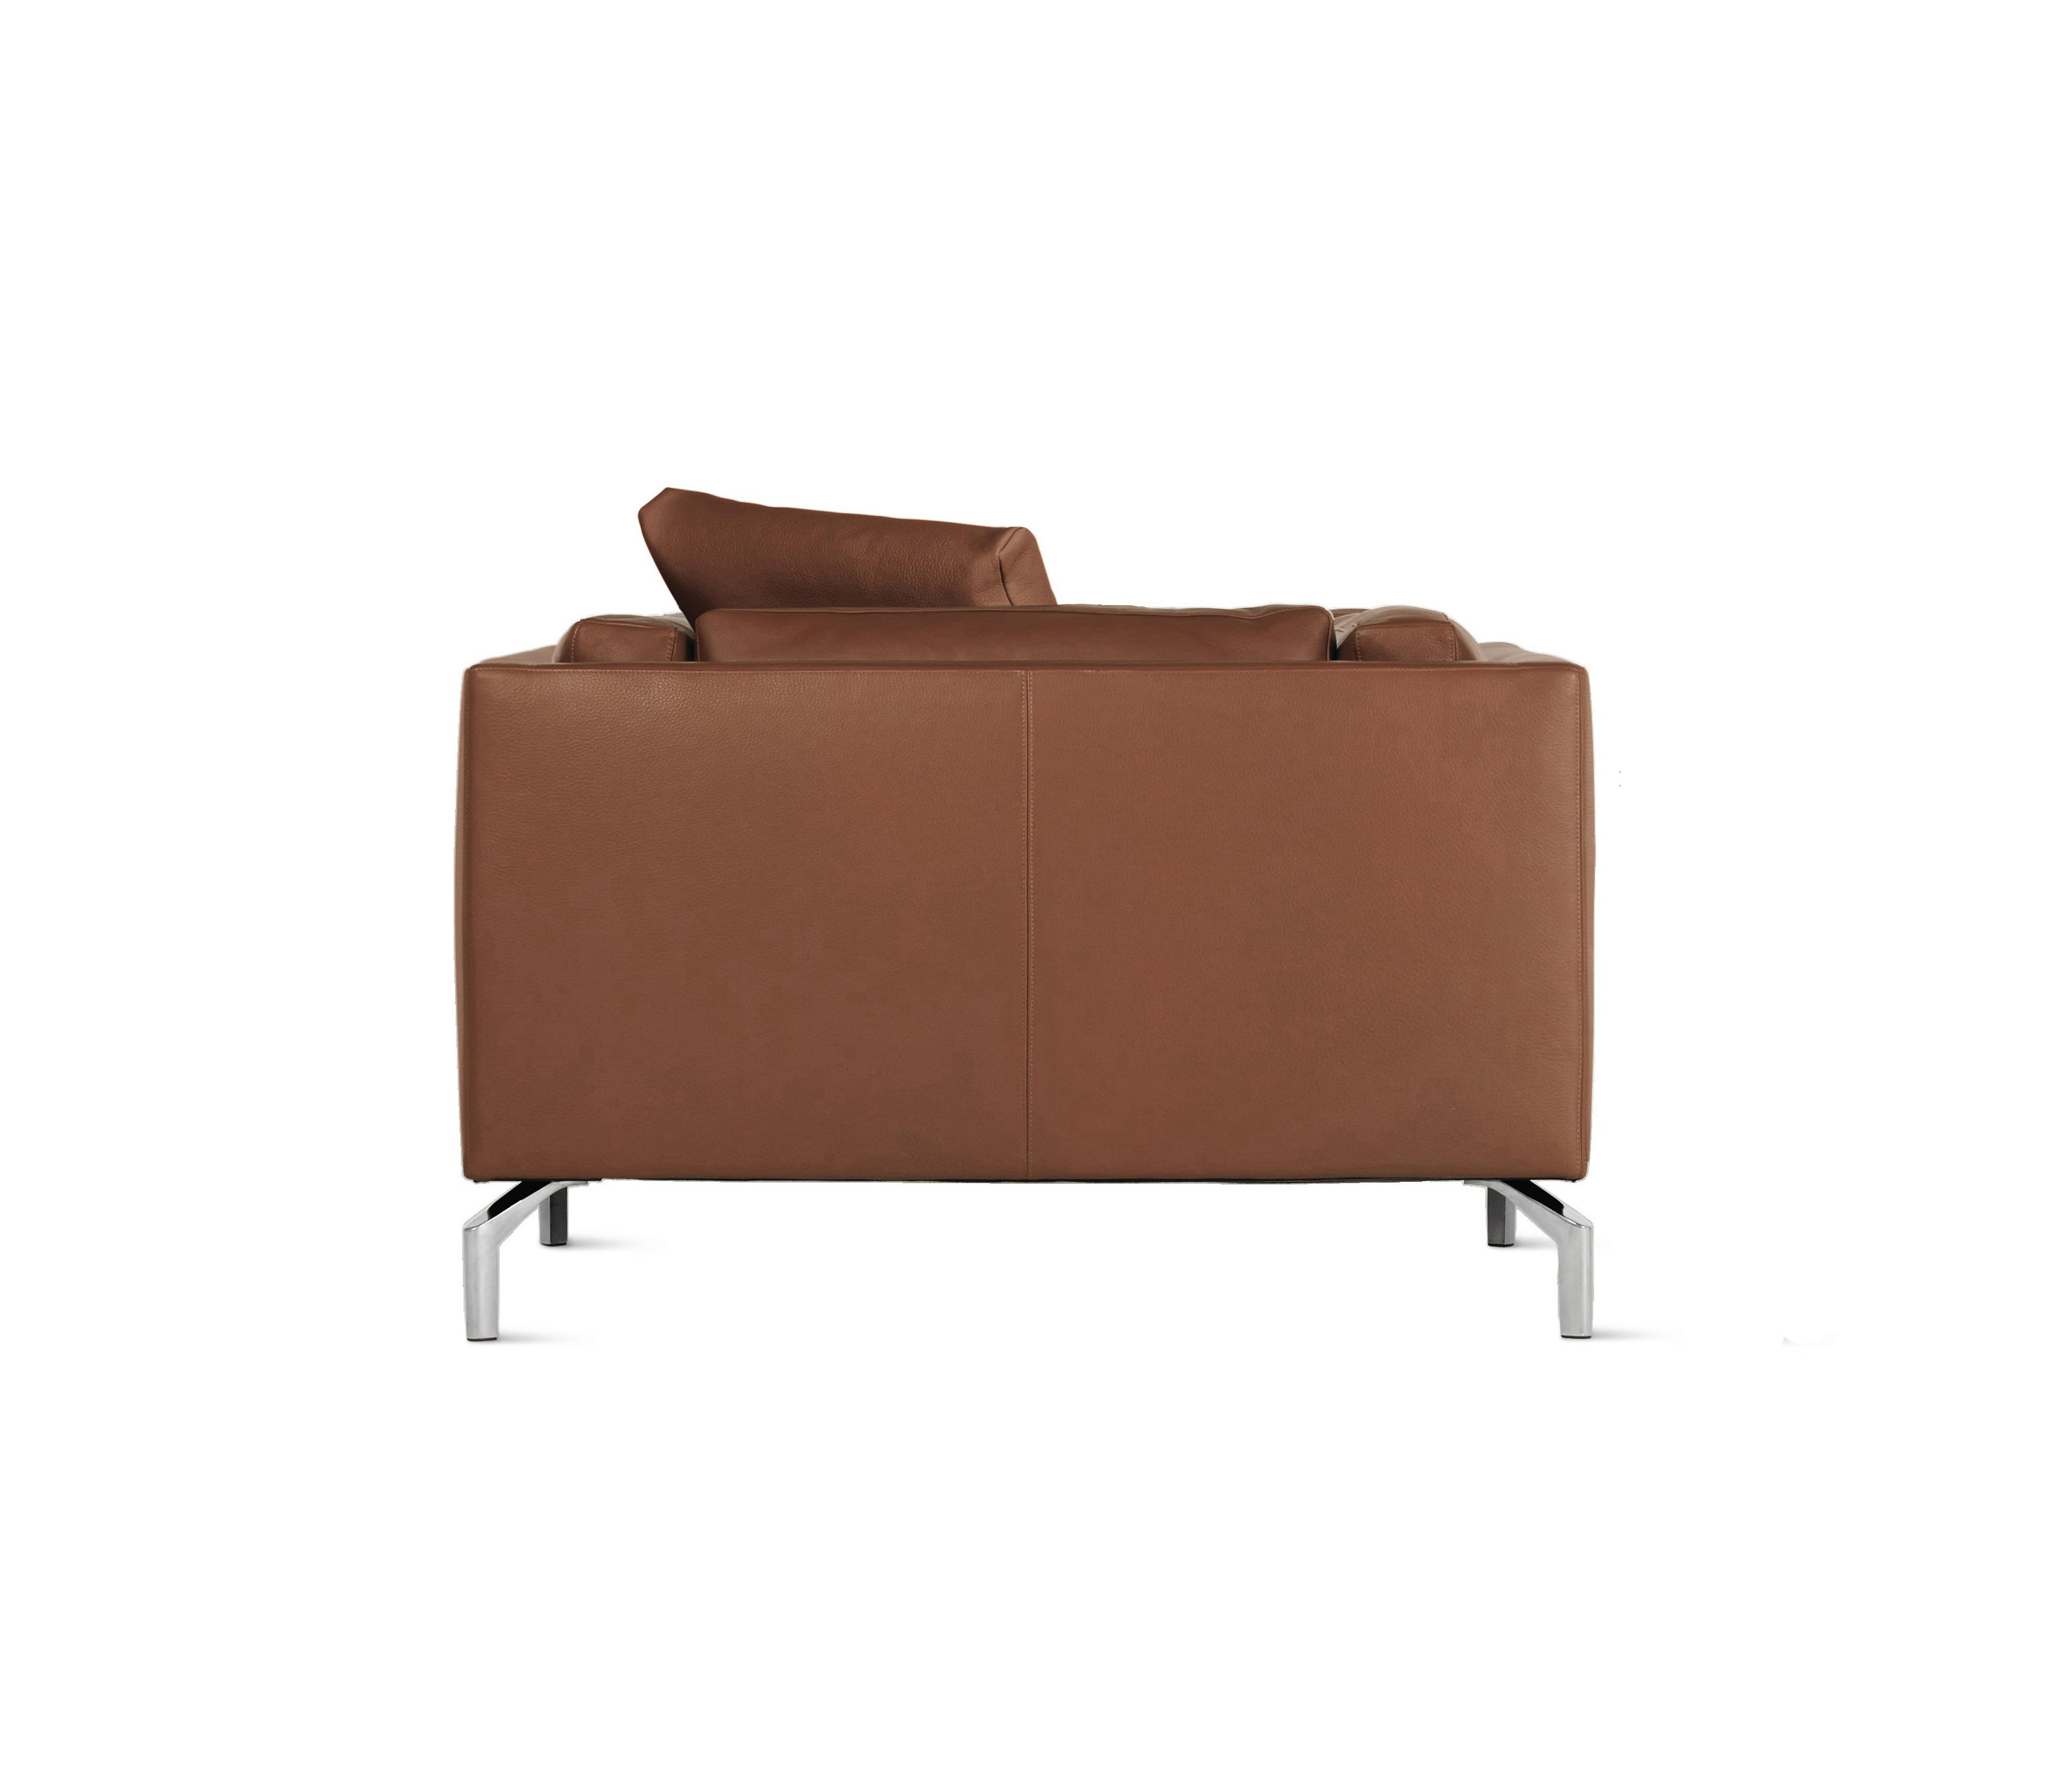 Overview designer manufacturer media reviews -  Como Armchair In Leather By Design Within Reach Armchairs